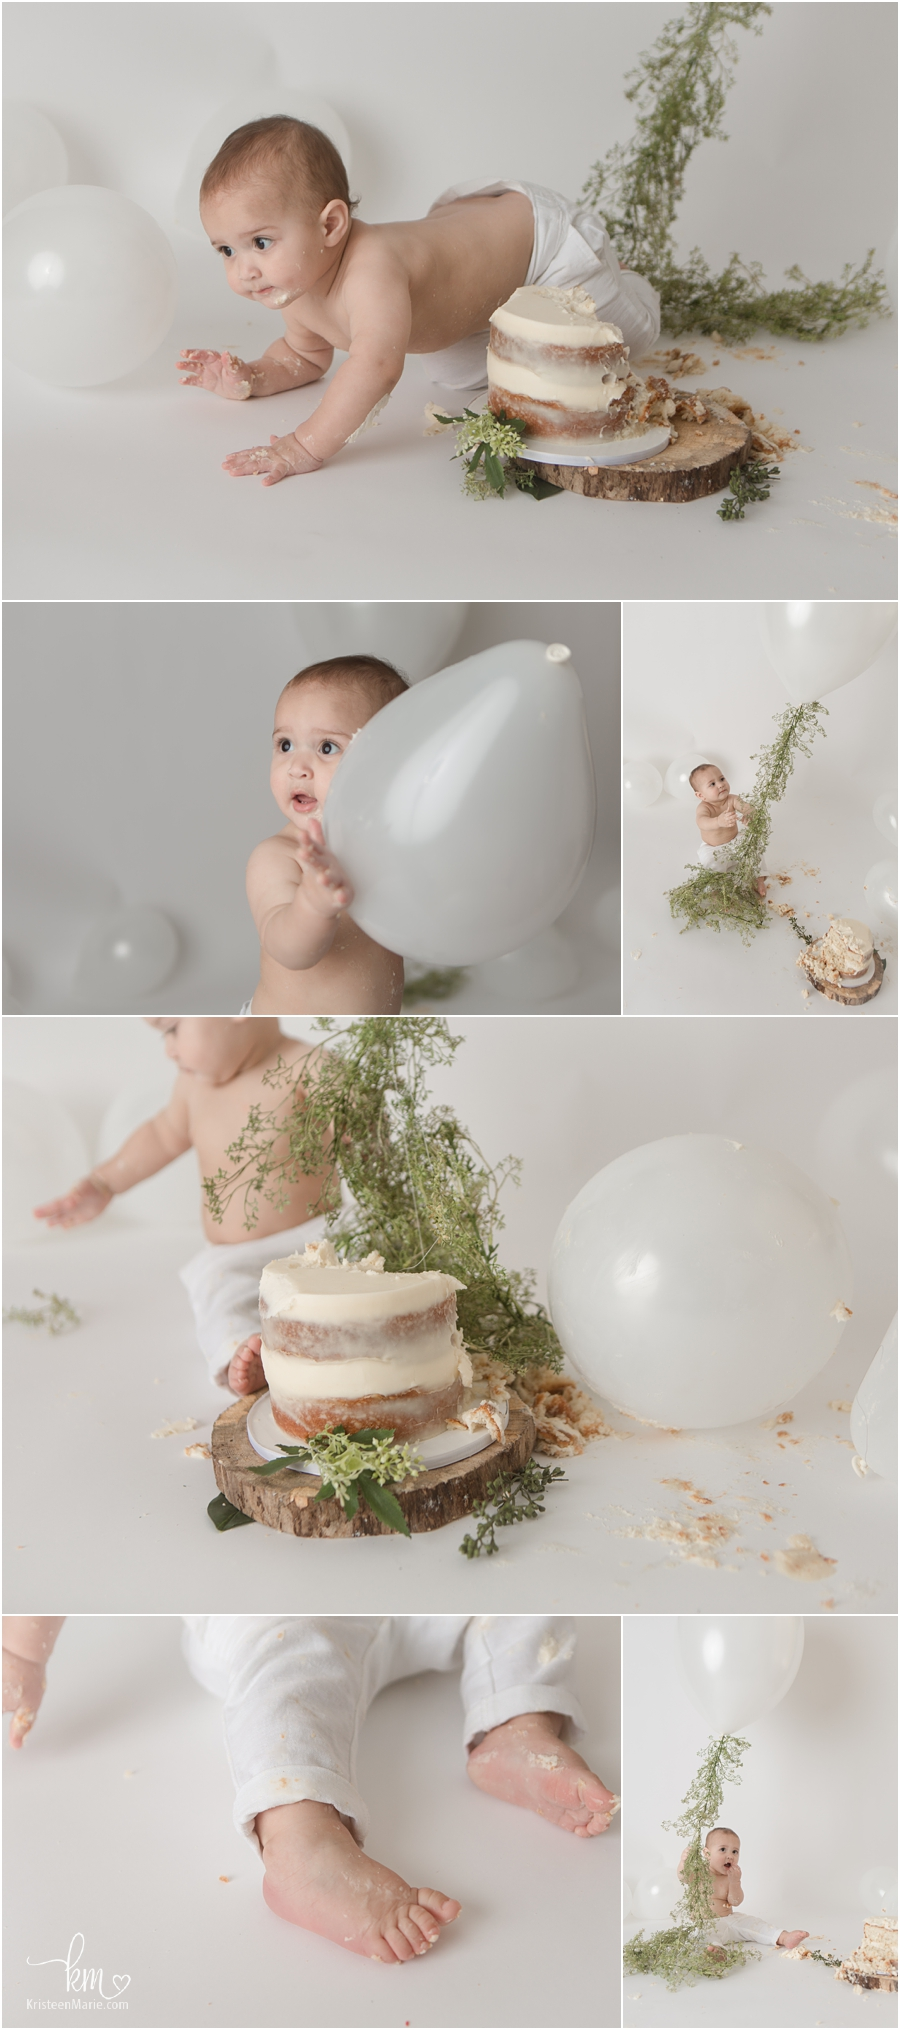 white cake smash session with flower greenery for little 1-year-old boy